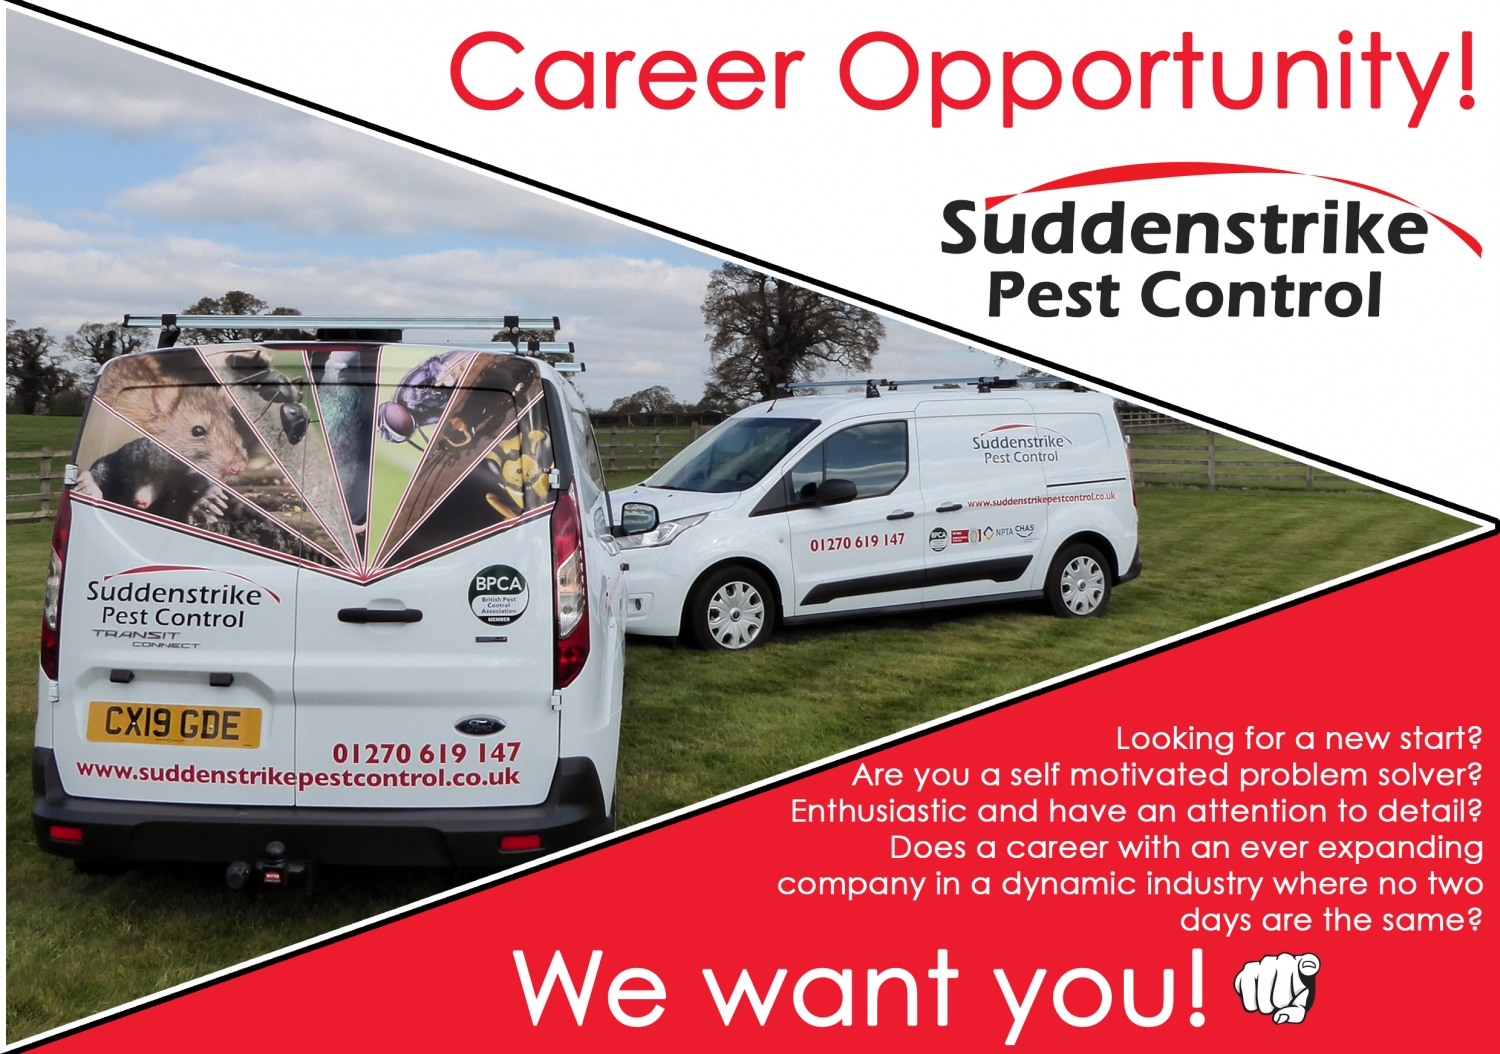 Suddenstrike Cheshire | Pest Control Services | Job advert